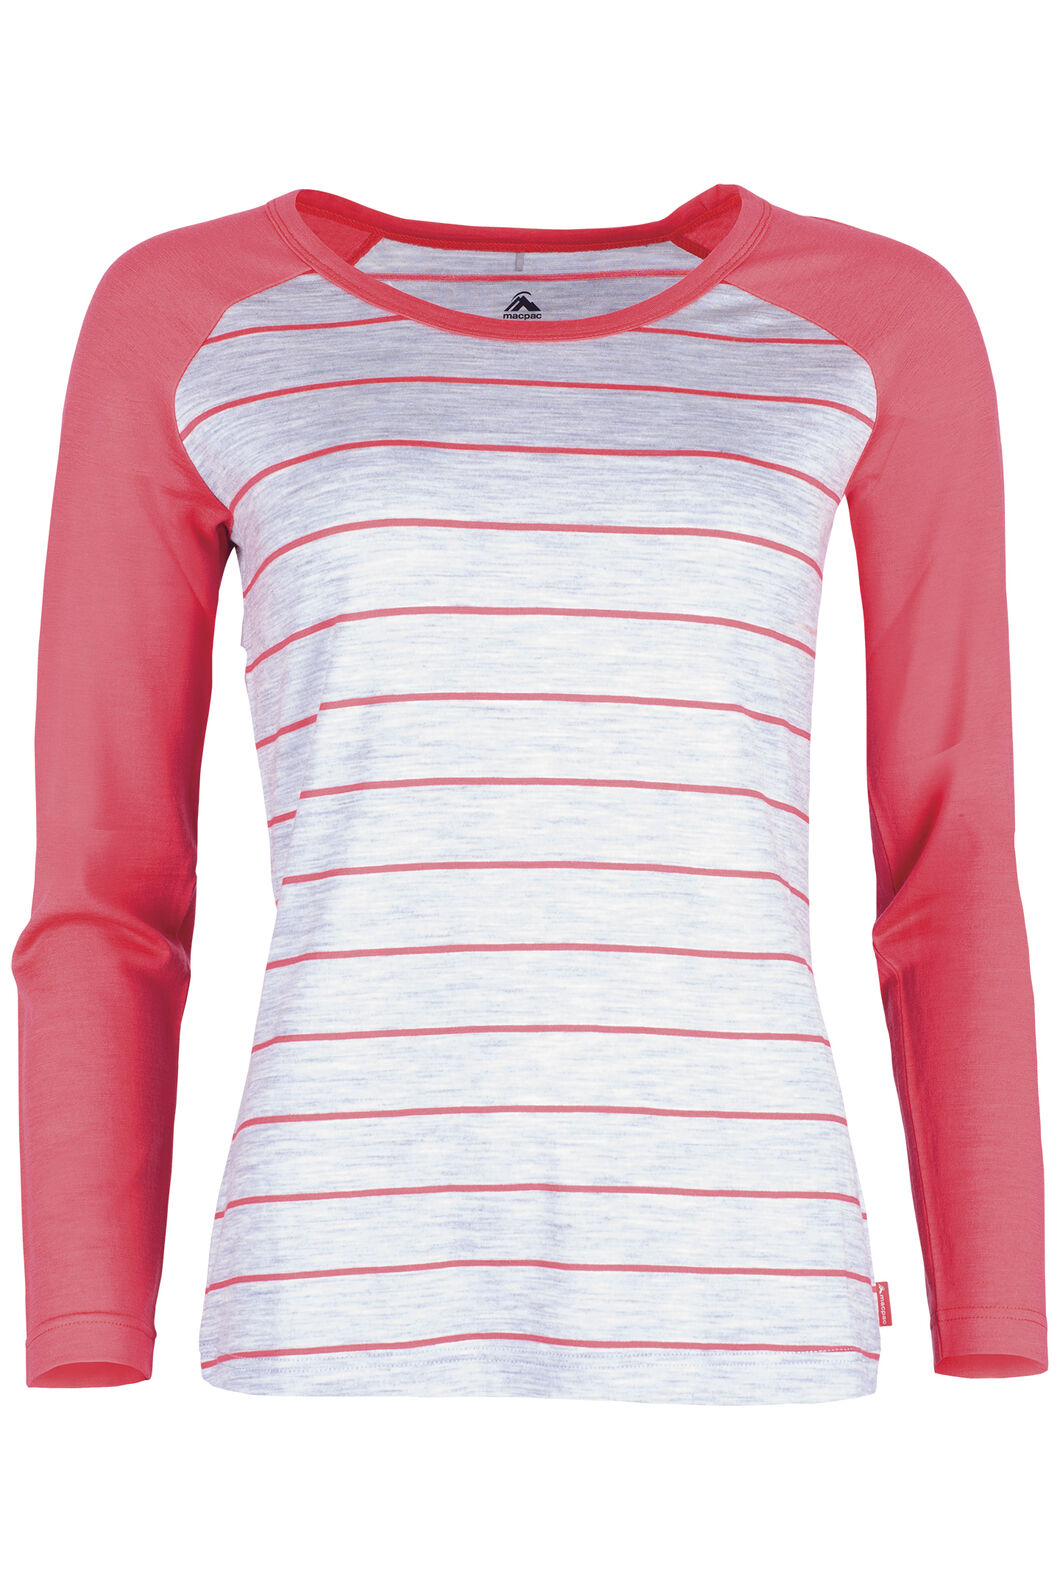 Macpac Victoria 180 Scoop Top Womens, Cayenne Stripe, hi-res